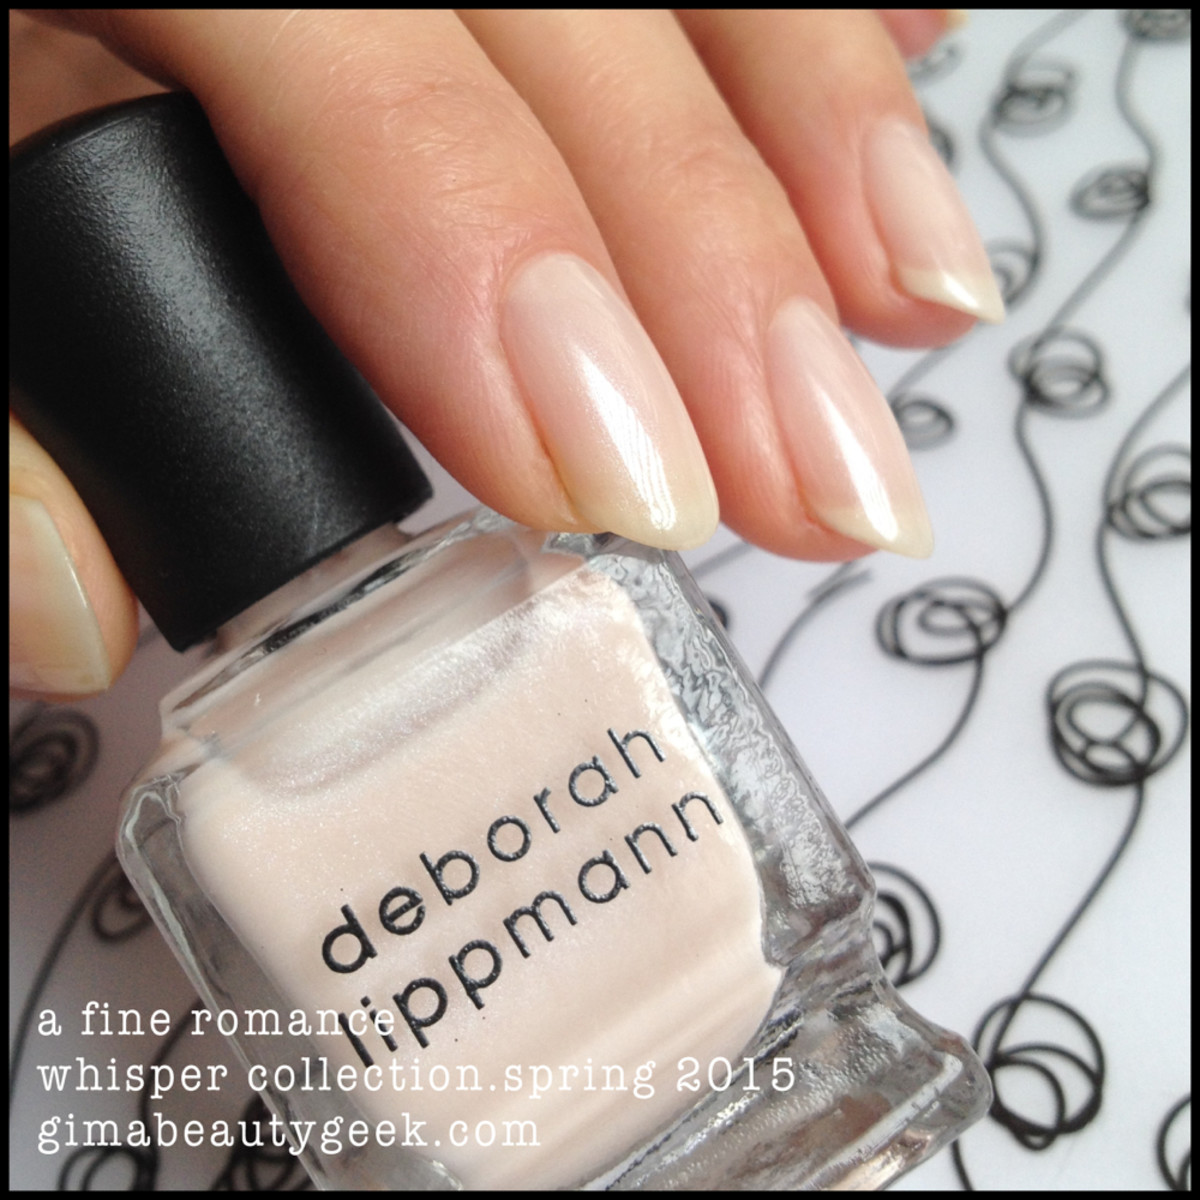 Deborah Lippmann A Fine Romance Whisper Collection Spring 2015